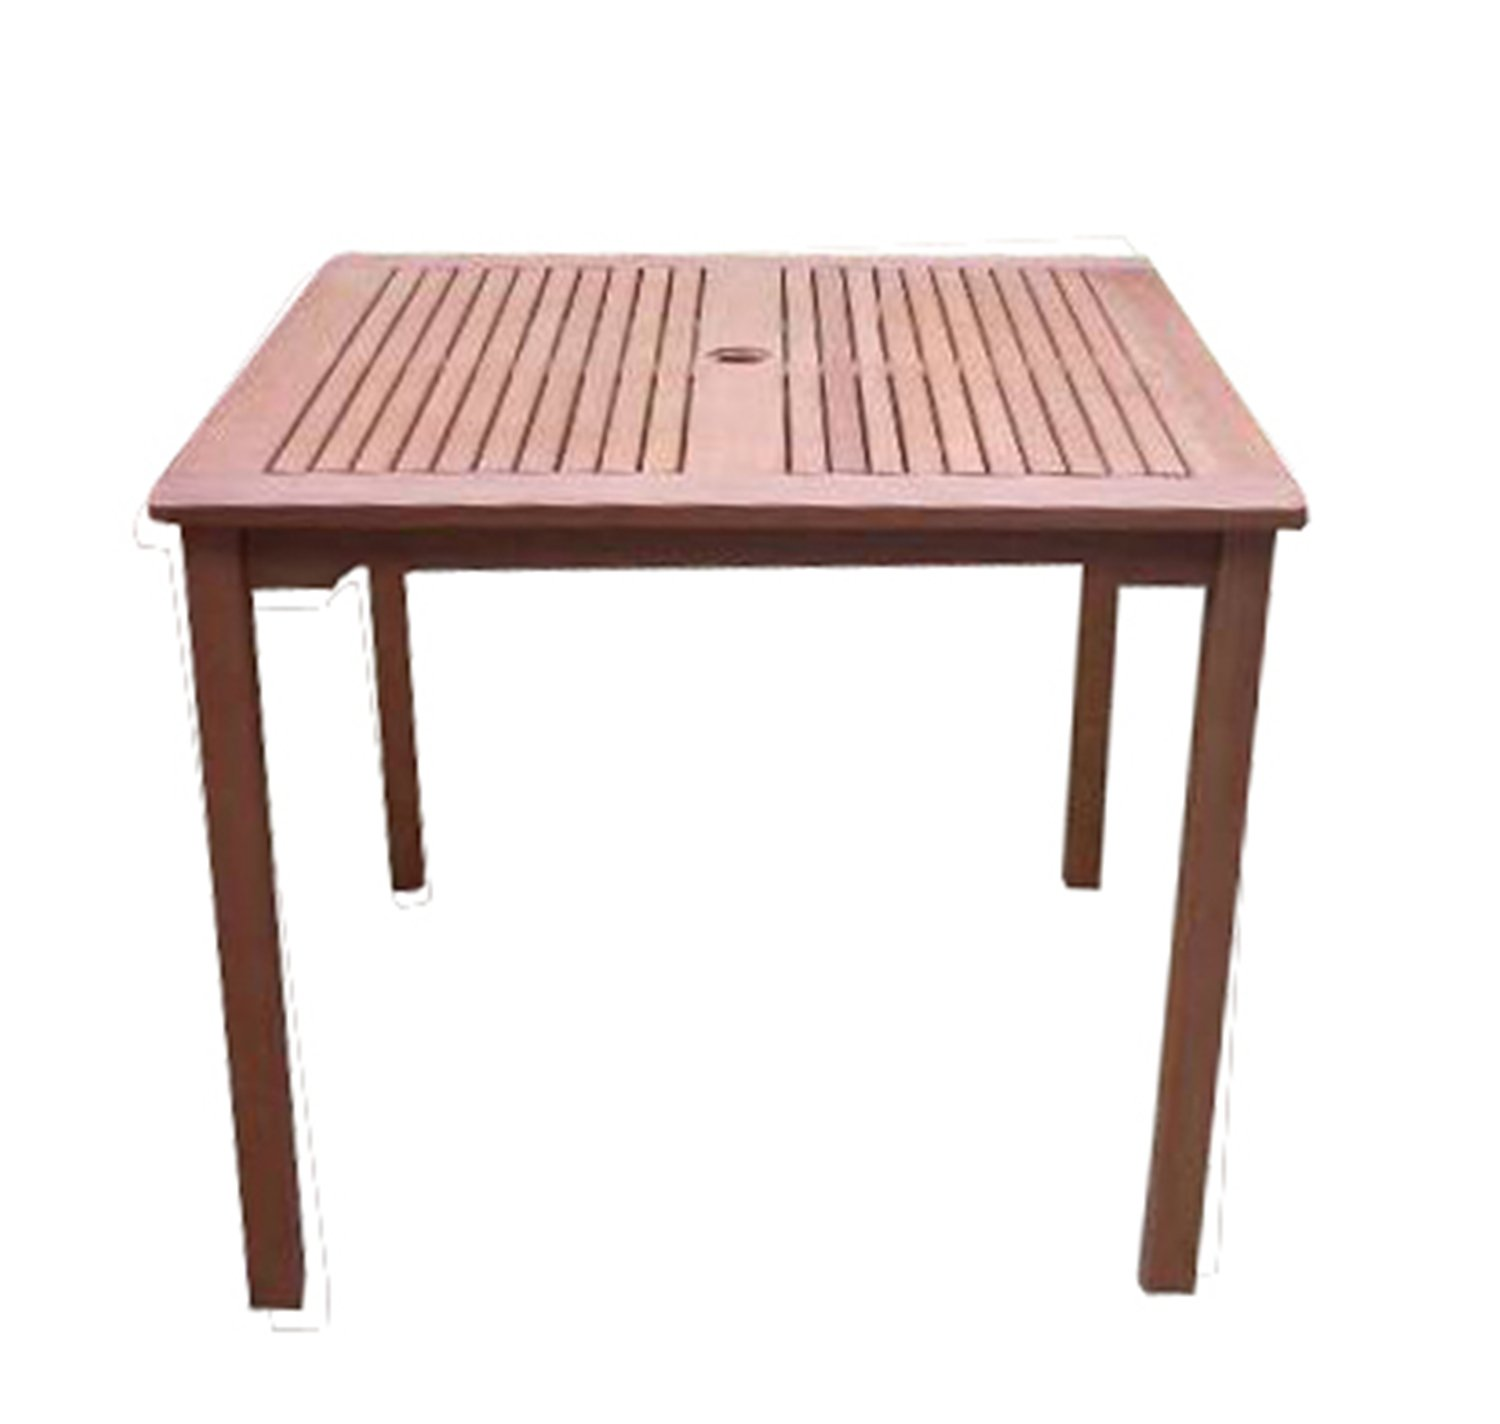 Outdoor wood furniture - Amazon Com Vifah V1104 Ibiza Outdoor Wood Stacking Table Natural Wood Finish 35 1 2 By 35 4 By 29 1 2 Inch Patio Dining Tables Patio Lawn Garden